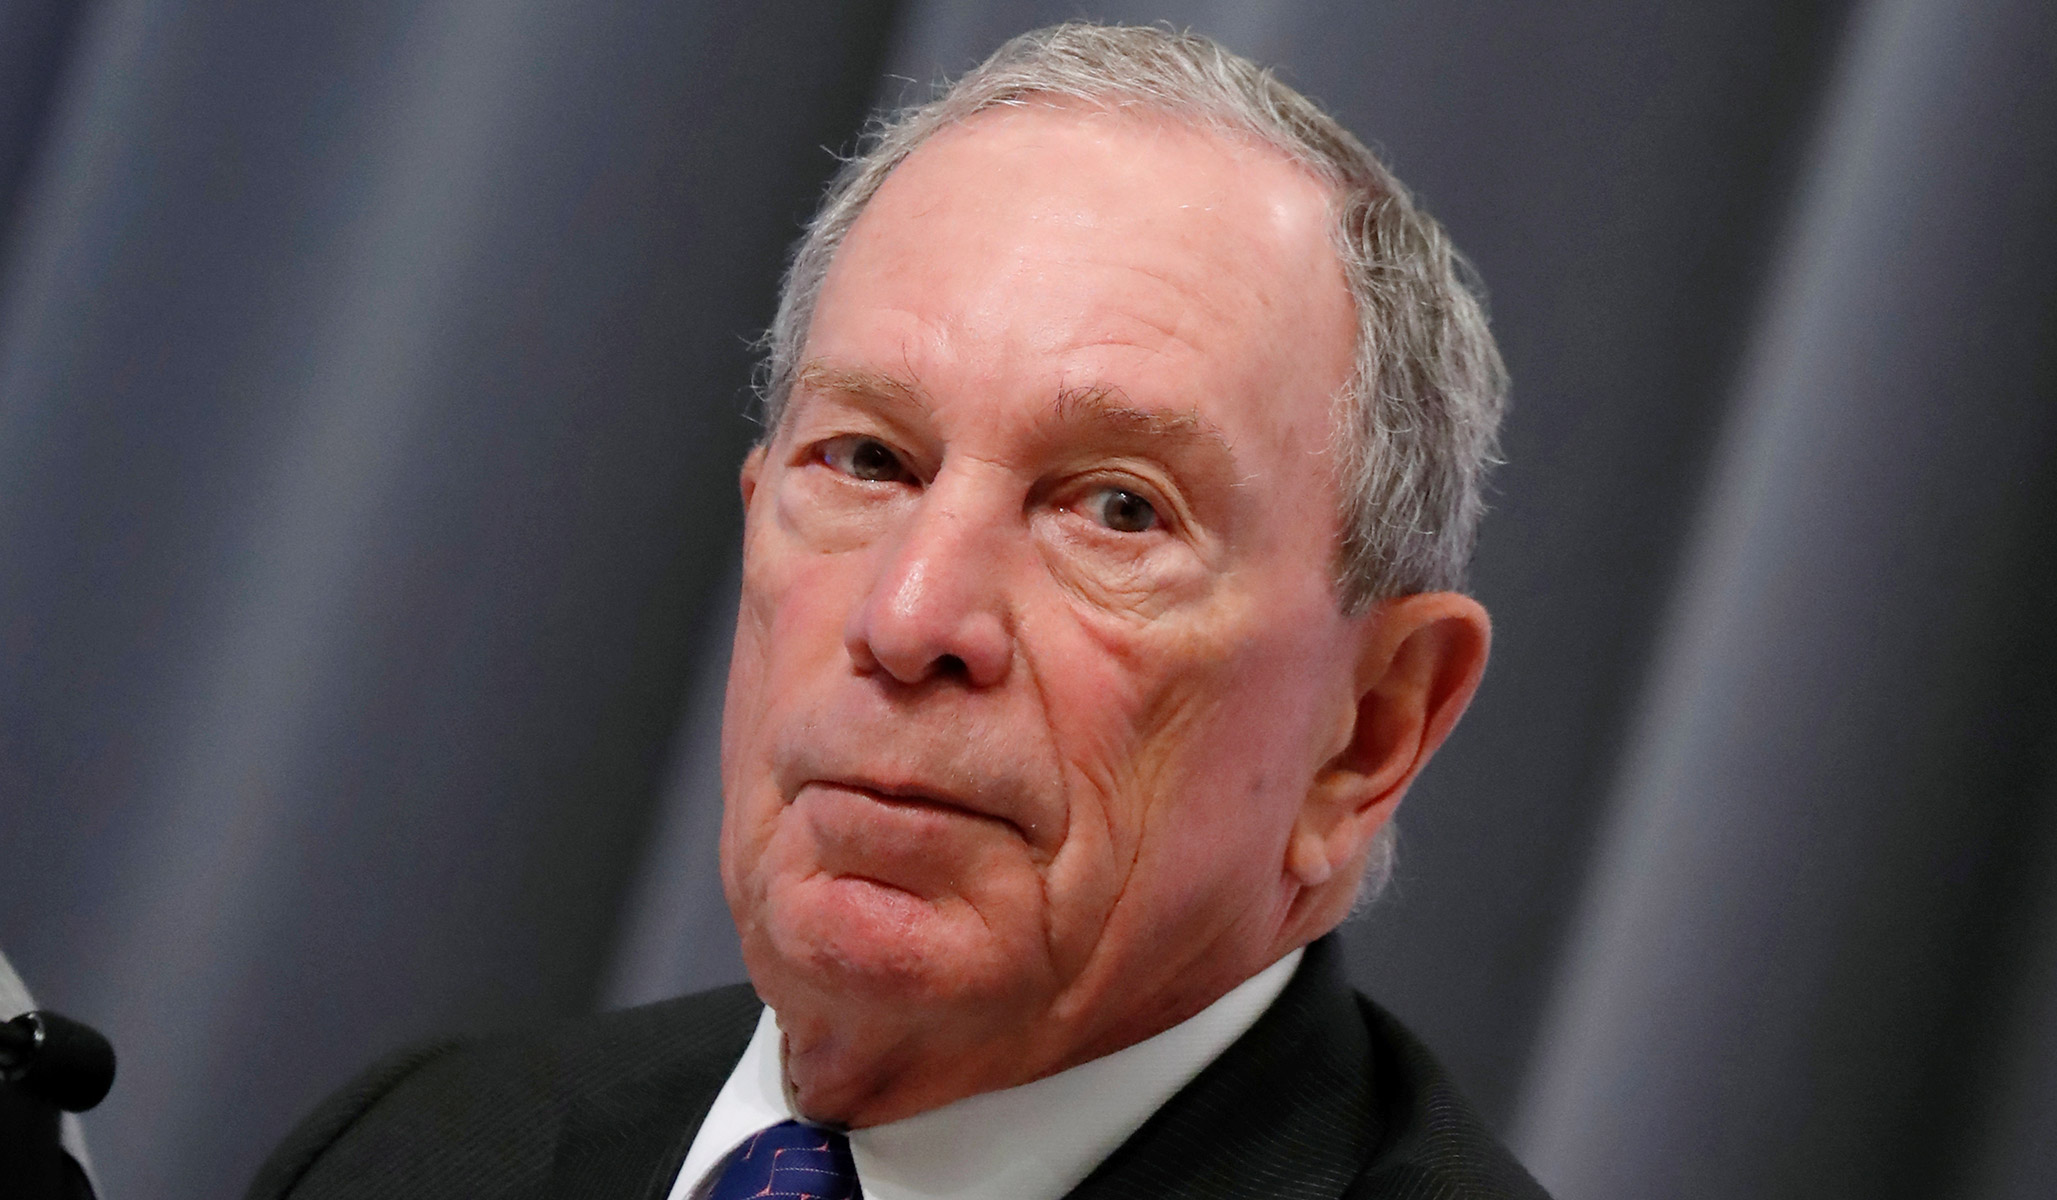 Bloomberg Responded 'Kill It' after Employee Disclosed Her Pregnancy, 1997 Lawsuit Alleges